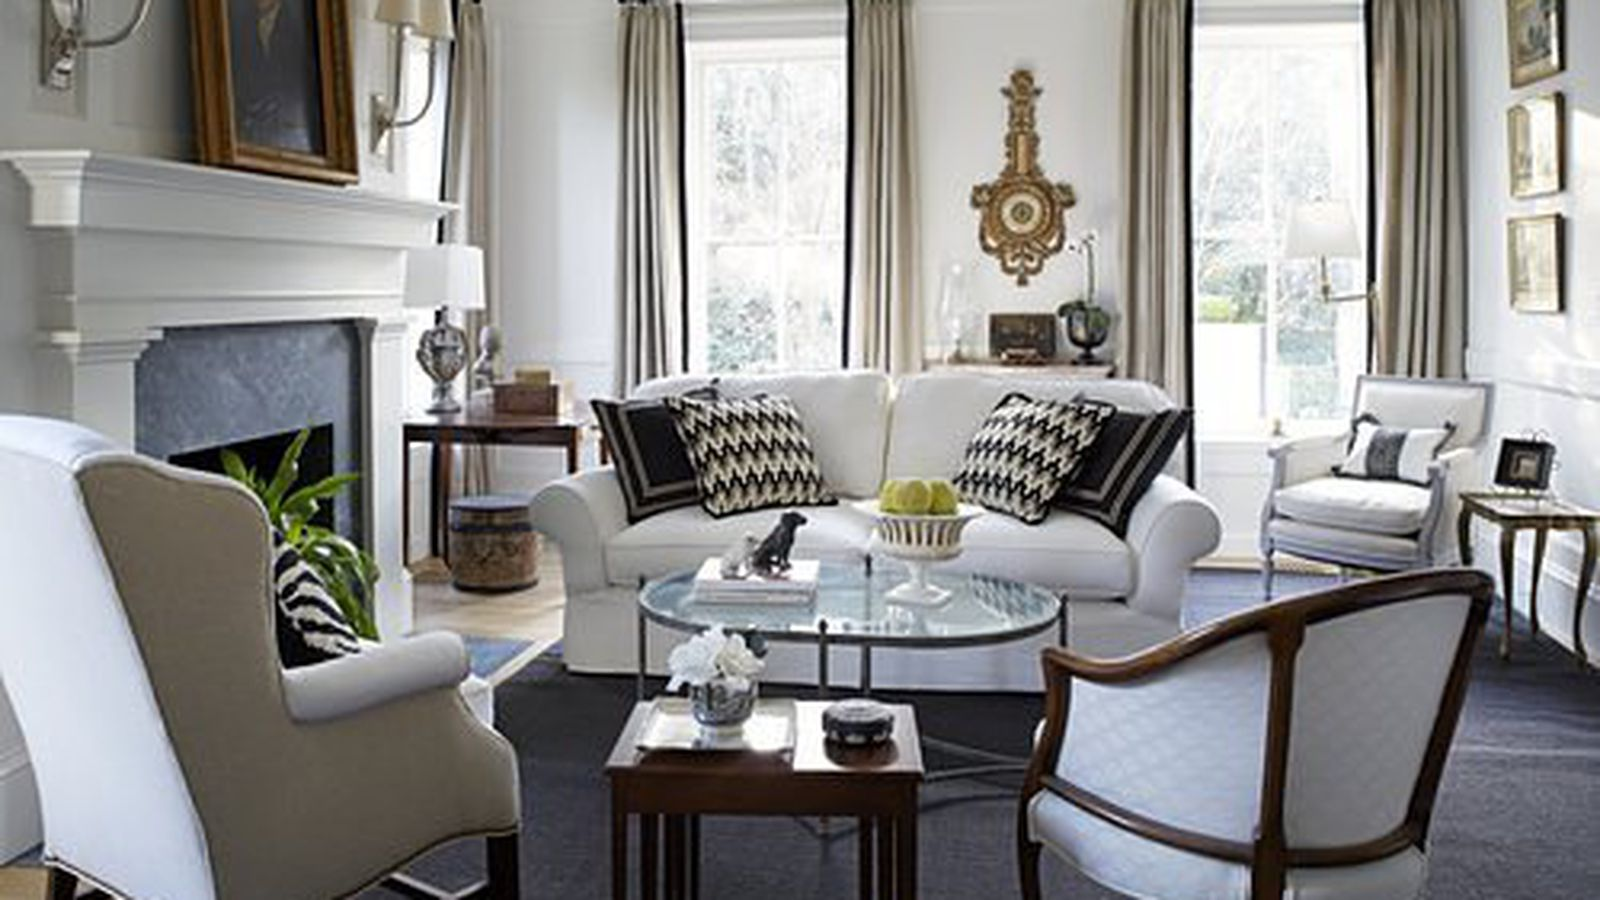 Home staging tips eliminate clutter focus on details - Interior design jobs philadelphia ...